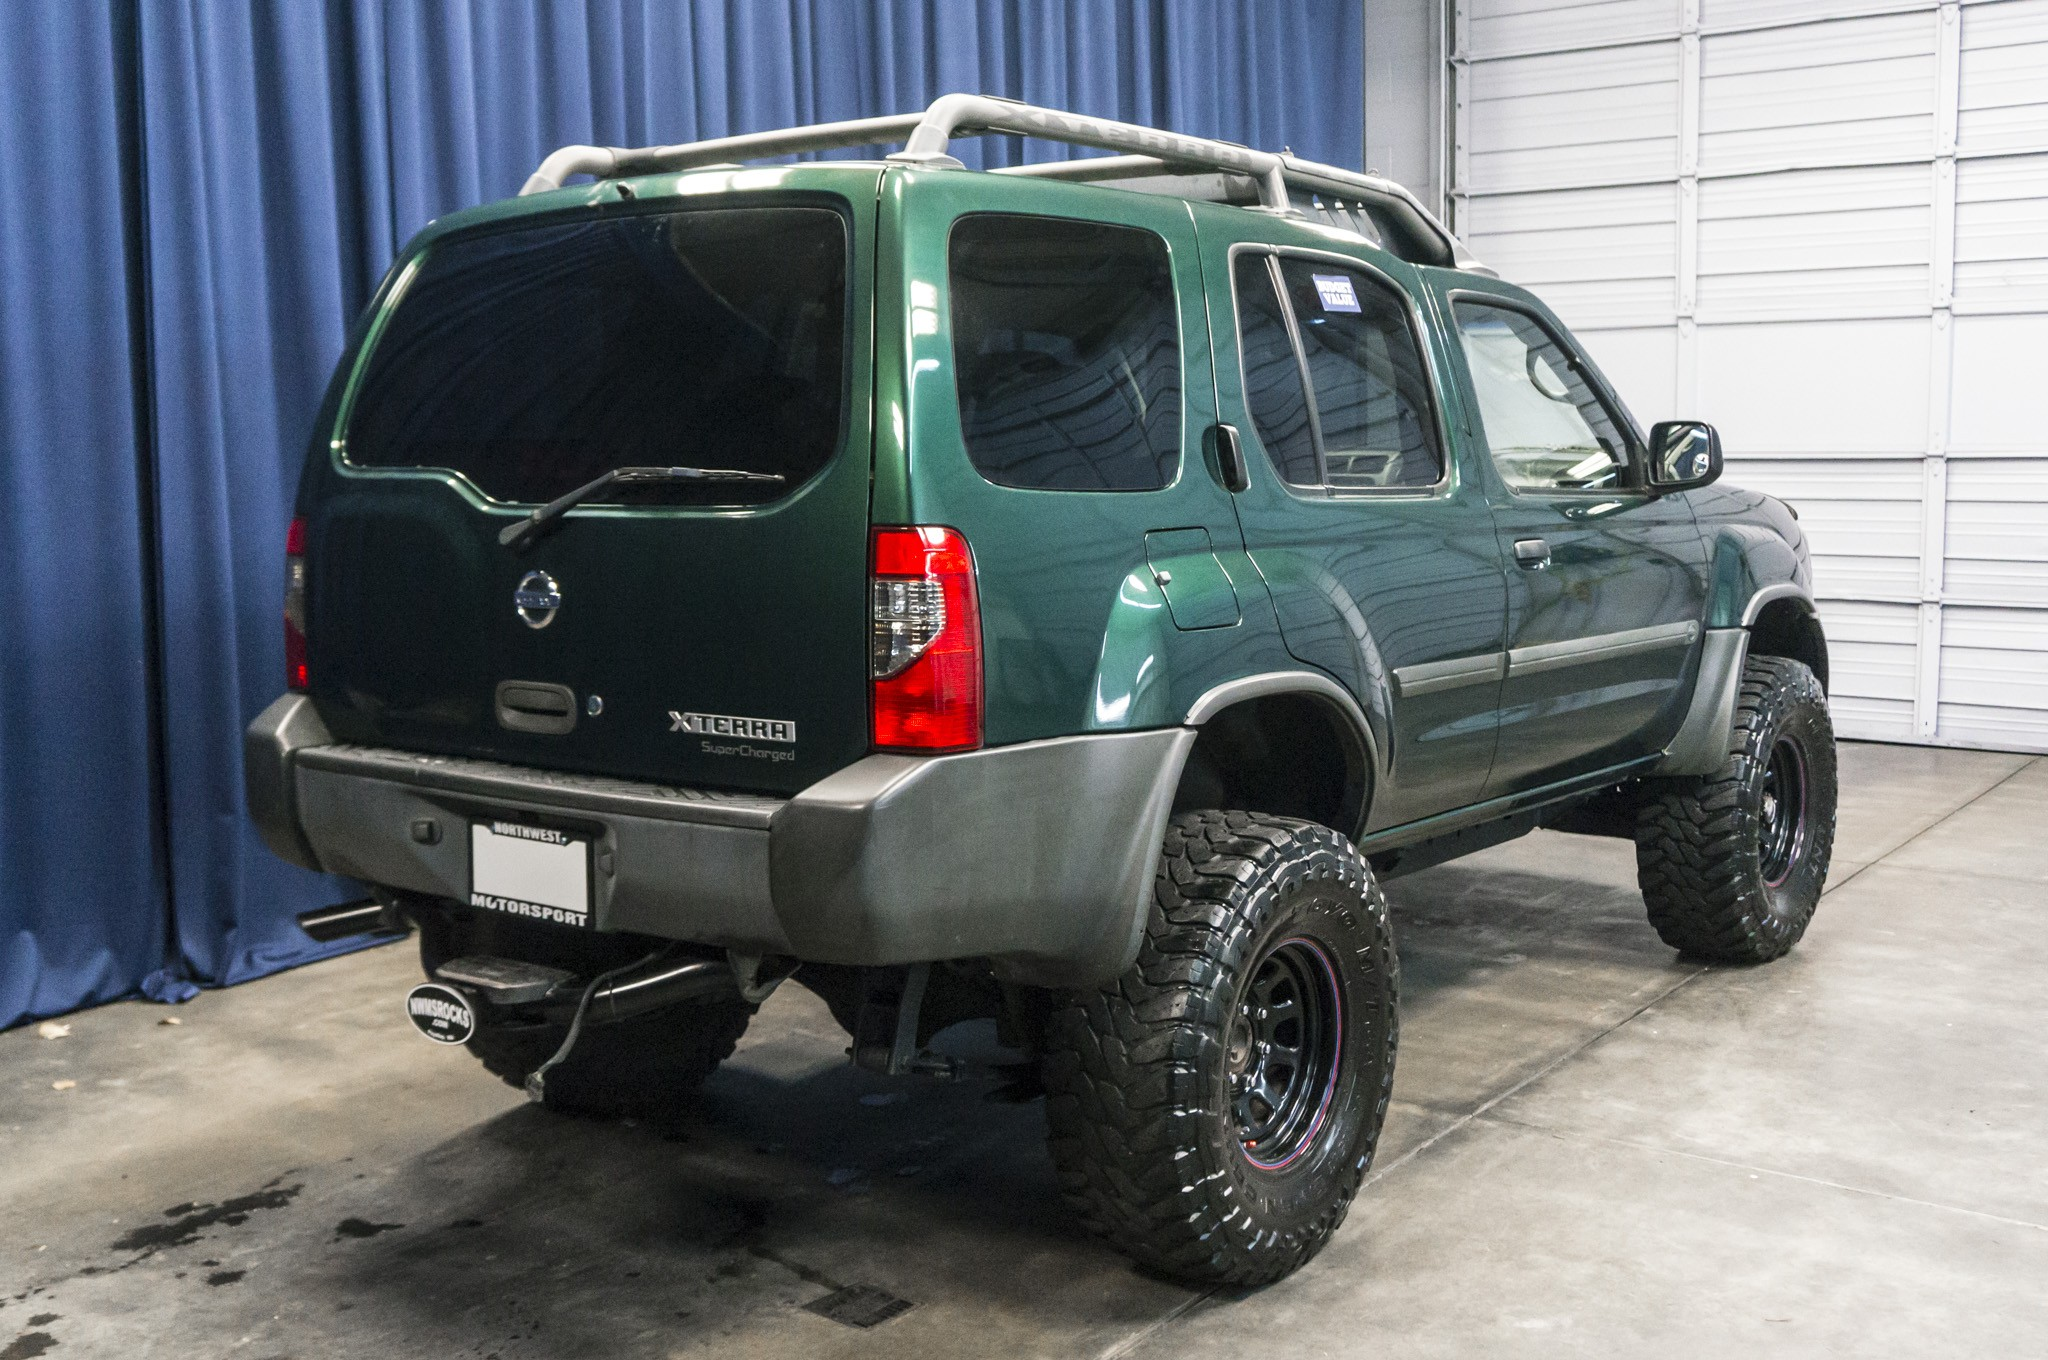 Used Lifted 2002 Nissan Xterra Supercharged 4x4 SUV For ...